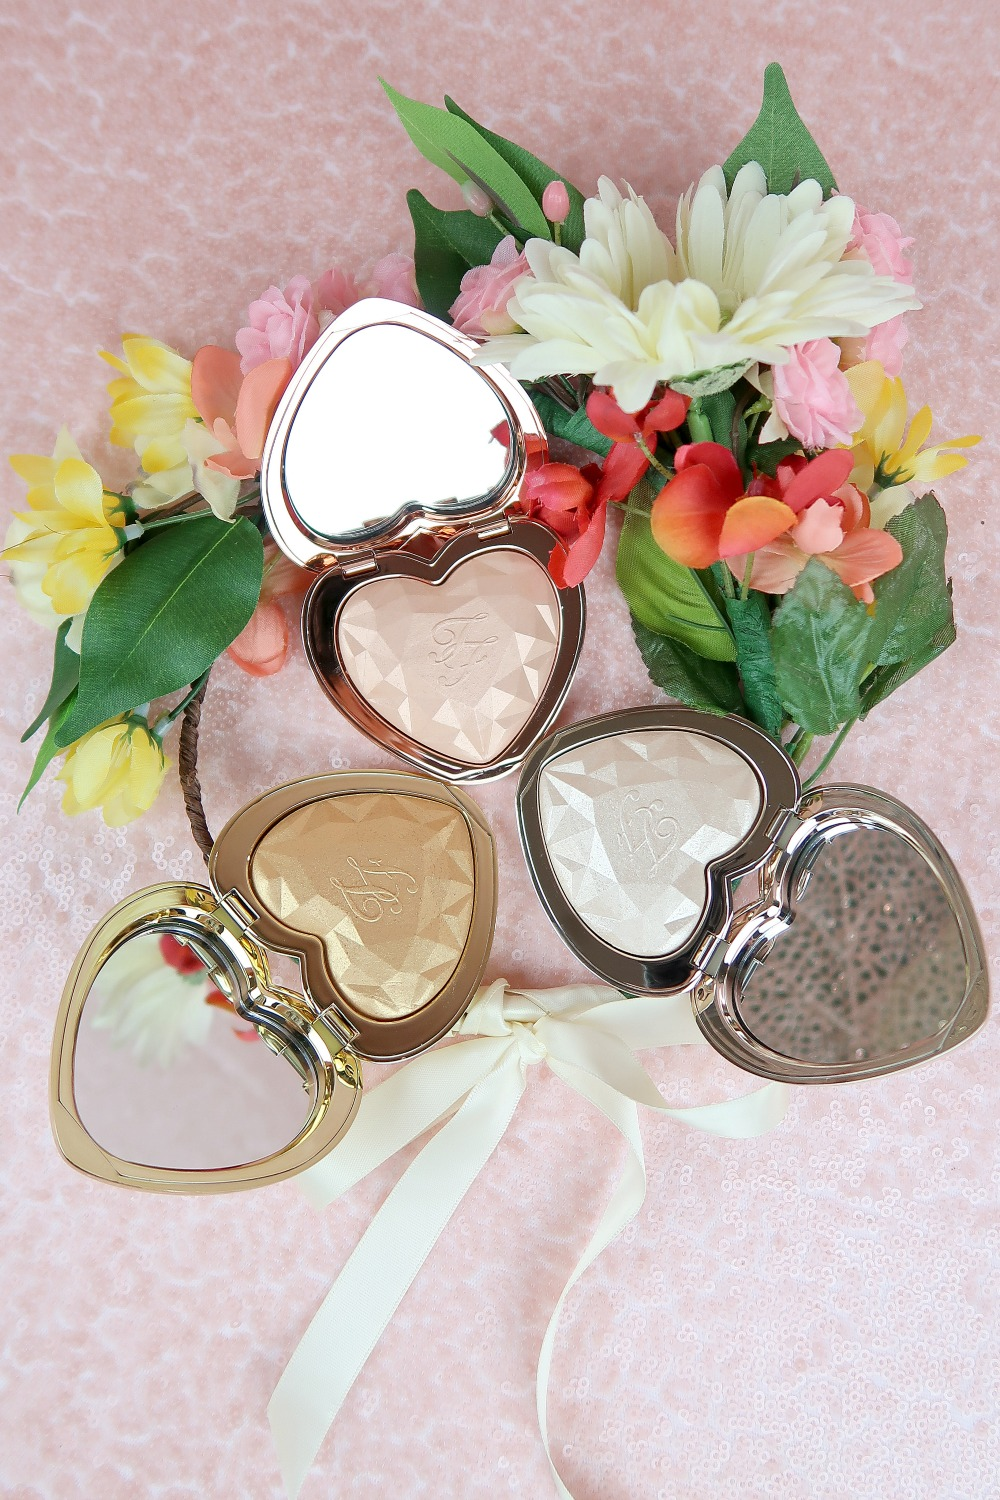 Too Faced Love Light Prismatic Highlighters Review and Swatches